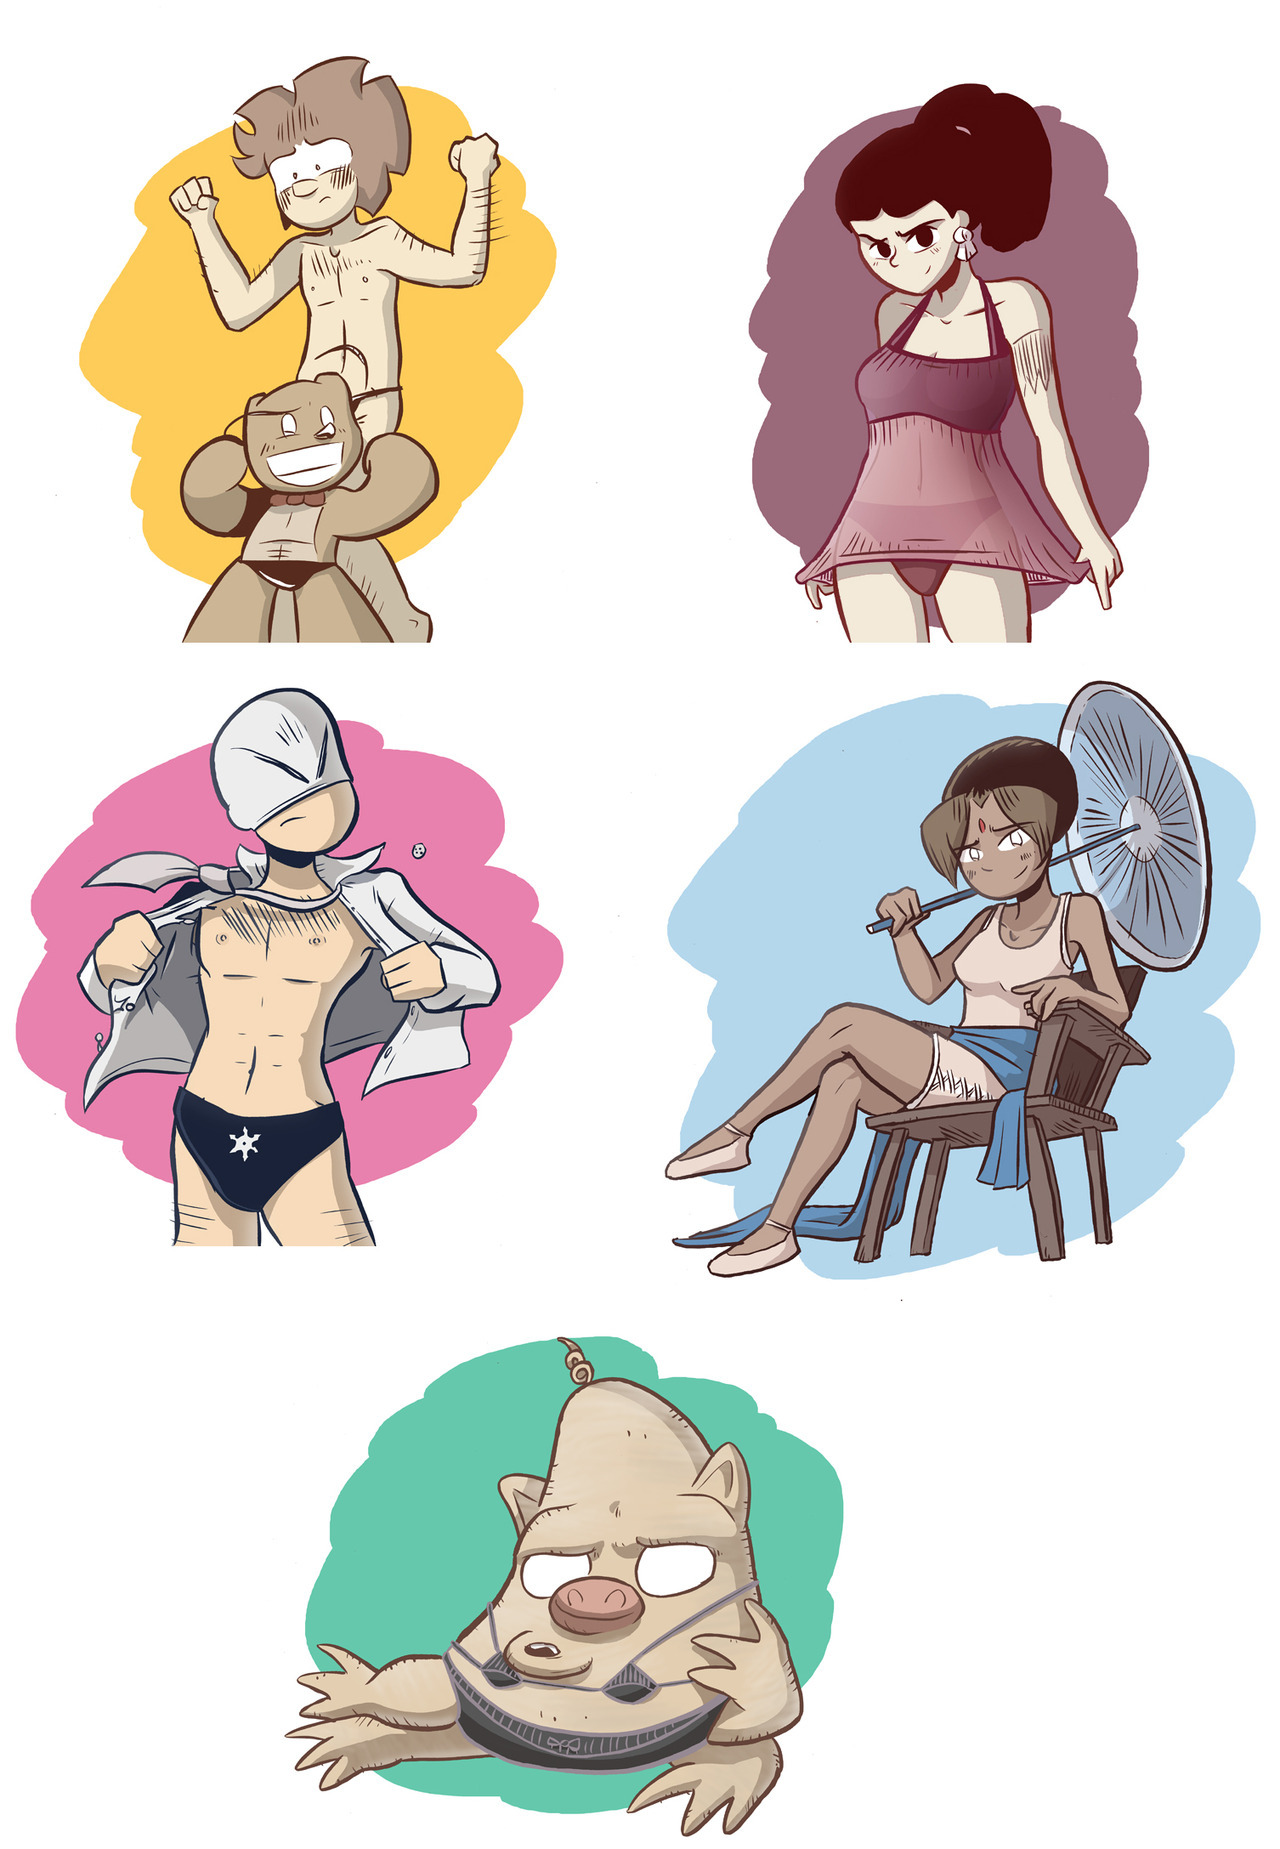 Here are all the pin-ups I drew on Friday, with a few post-Friday colouring tweaks. It's still seven months short of a full calendar, I guess! Maybe I will draw a few more later. I'm kind of curious what obscure supporting cast members they'd have to scrape up to actually fill the last few months. A couple of folks have asked if I'm going to sell any prints of these, or do any originals. I probably could! Email me if you are interested.